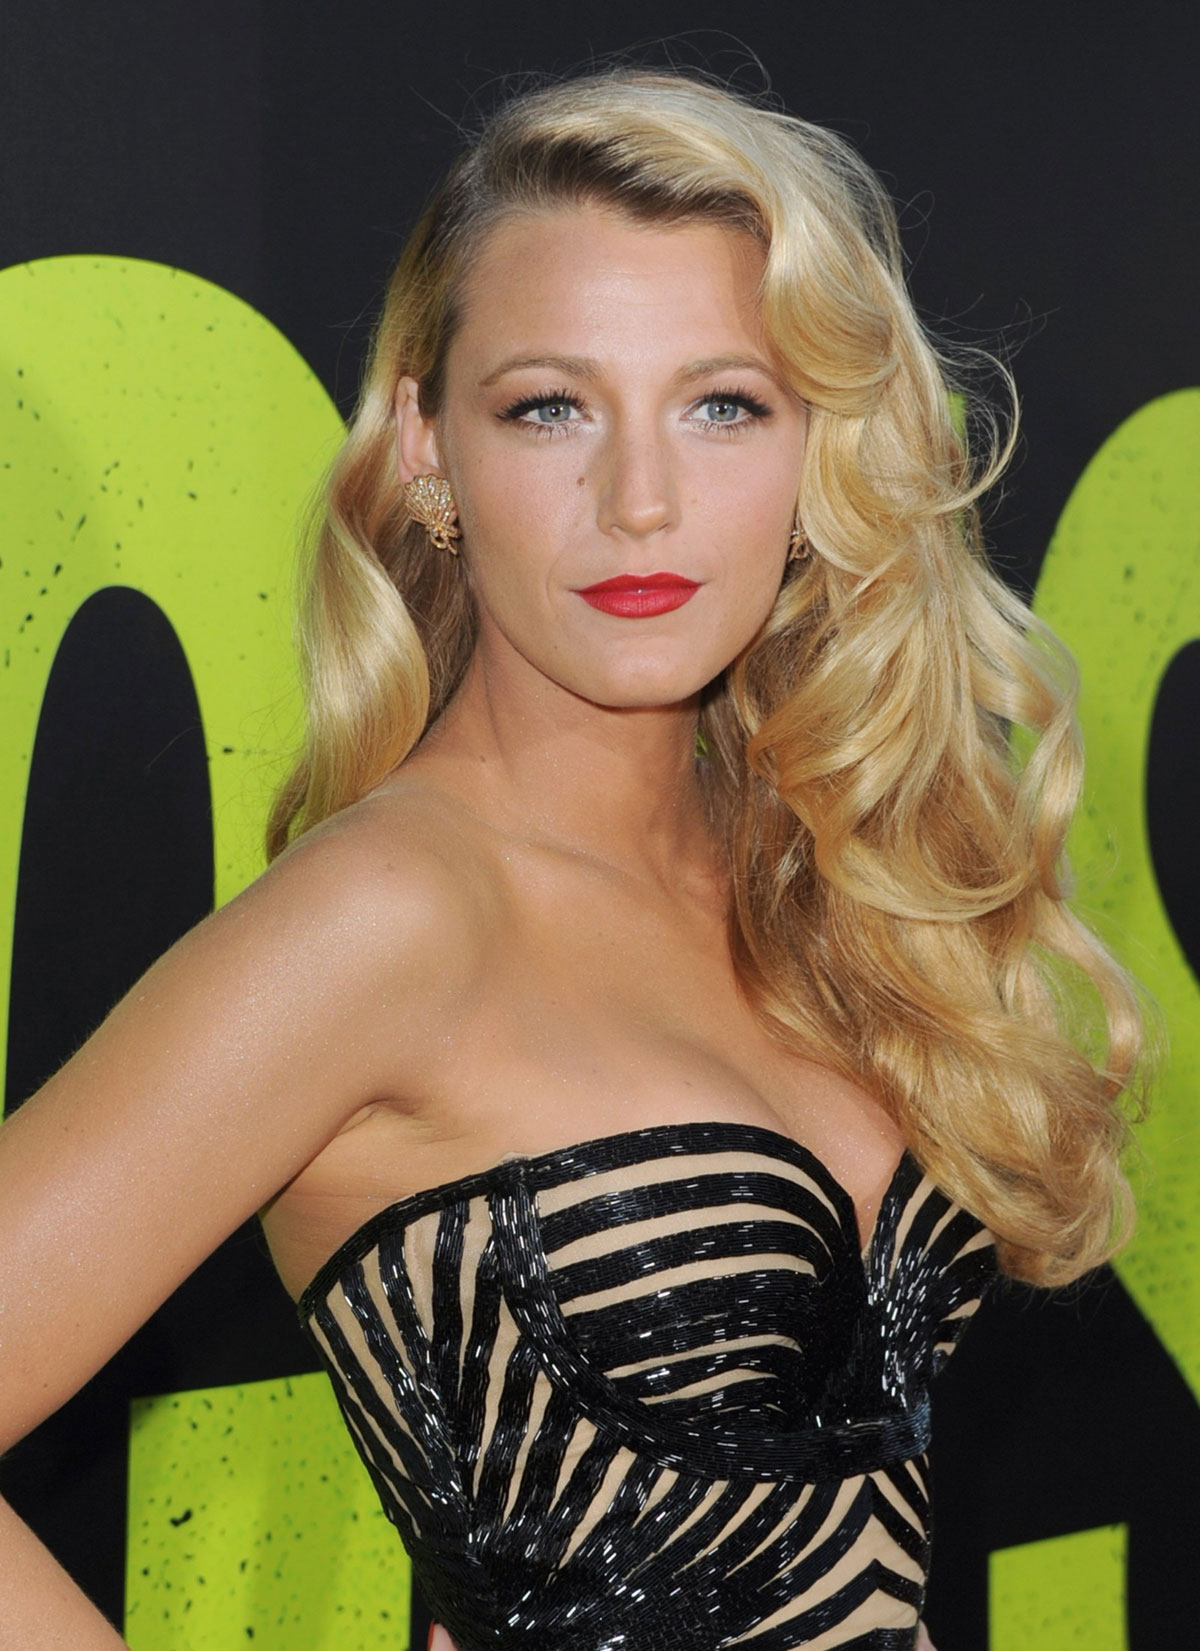 BLAKE LIVELY at Savages Premiere in Los Angeles - HawtCelebs ... Blake Lively